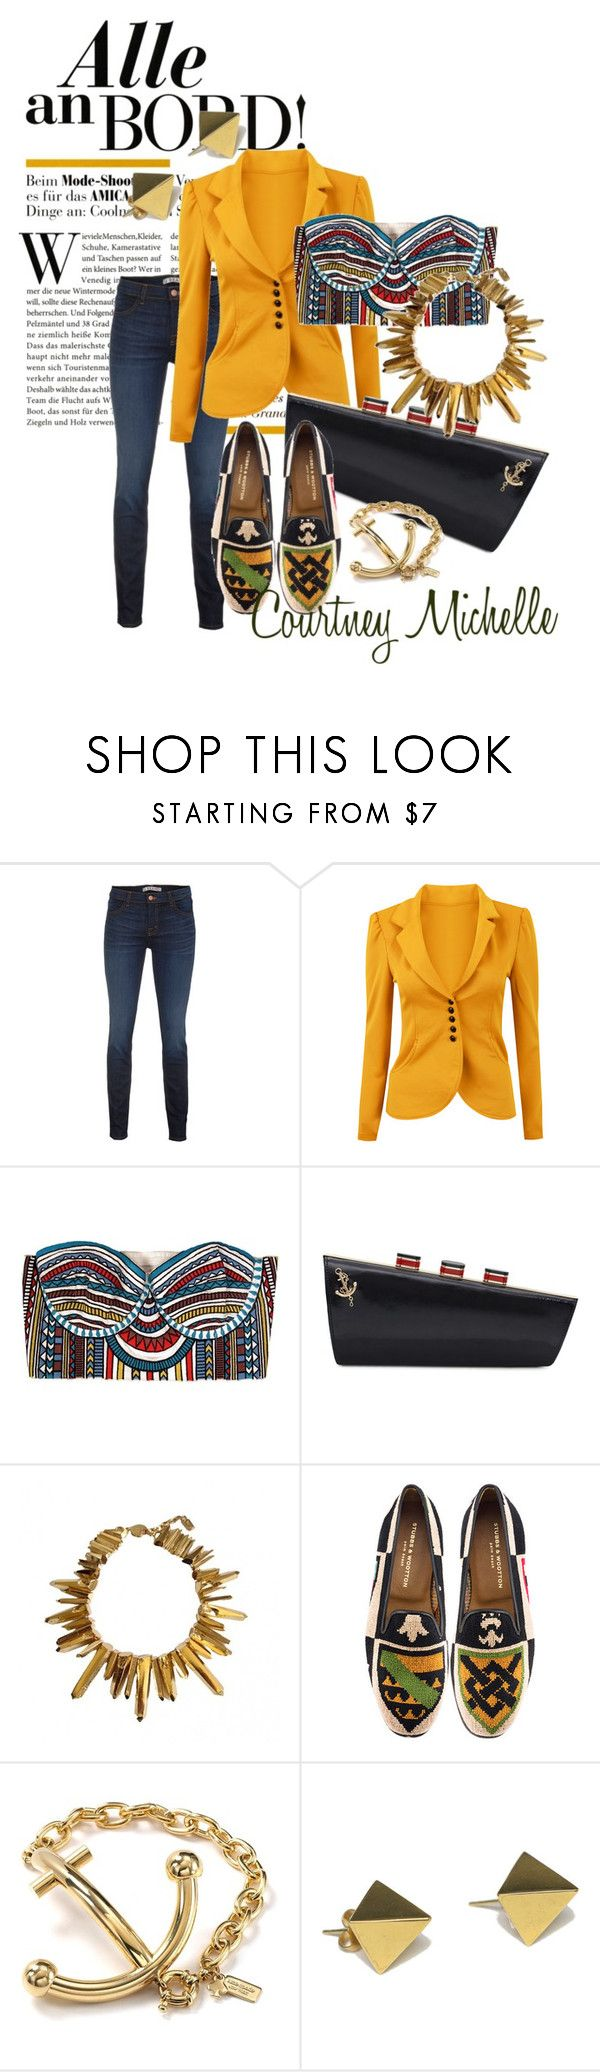 """Alle an Bord!"" by courtneymichele ❤ liked on Polyvore featuring J Brand, Mara Hoffman, Kate Spade, Yves Saint Laurent, Stubbs & Wootton and Tom Binns"